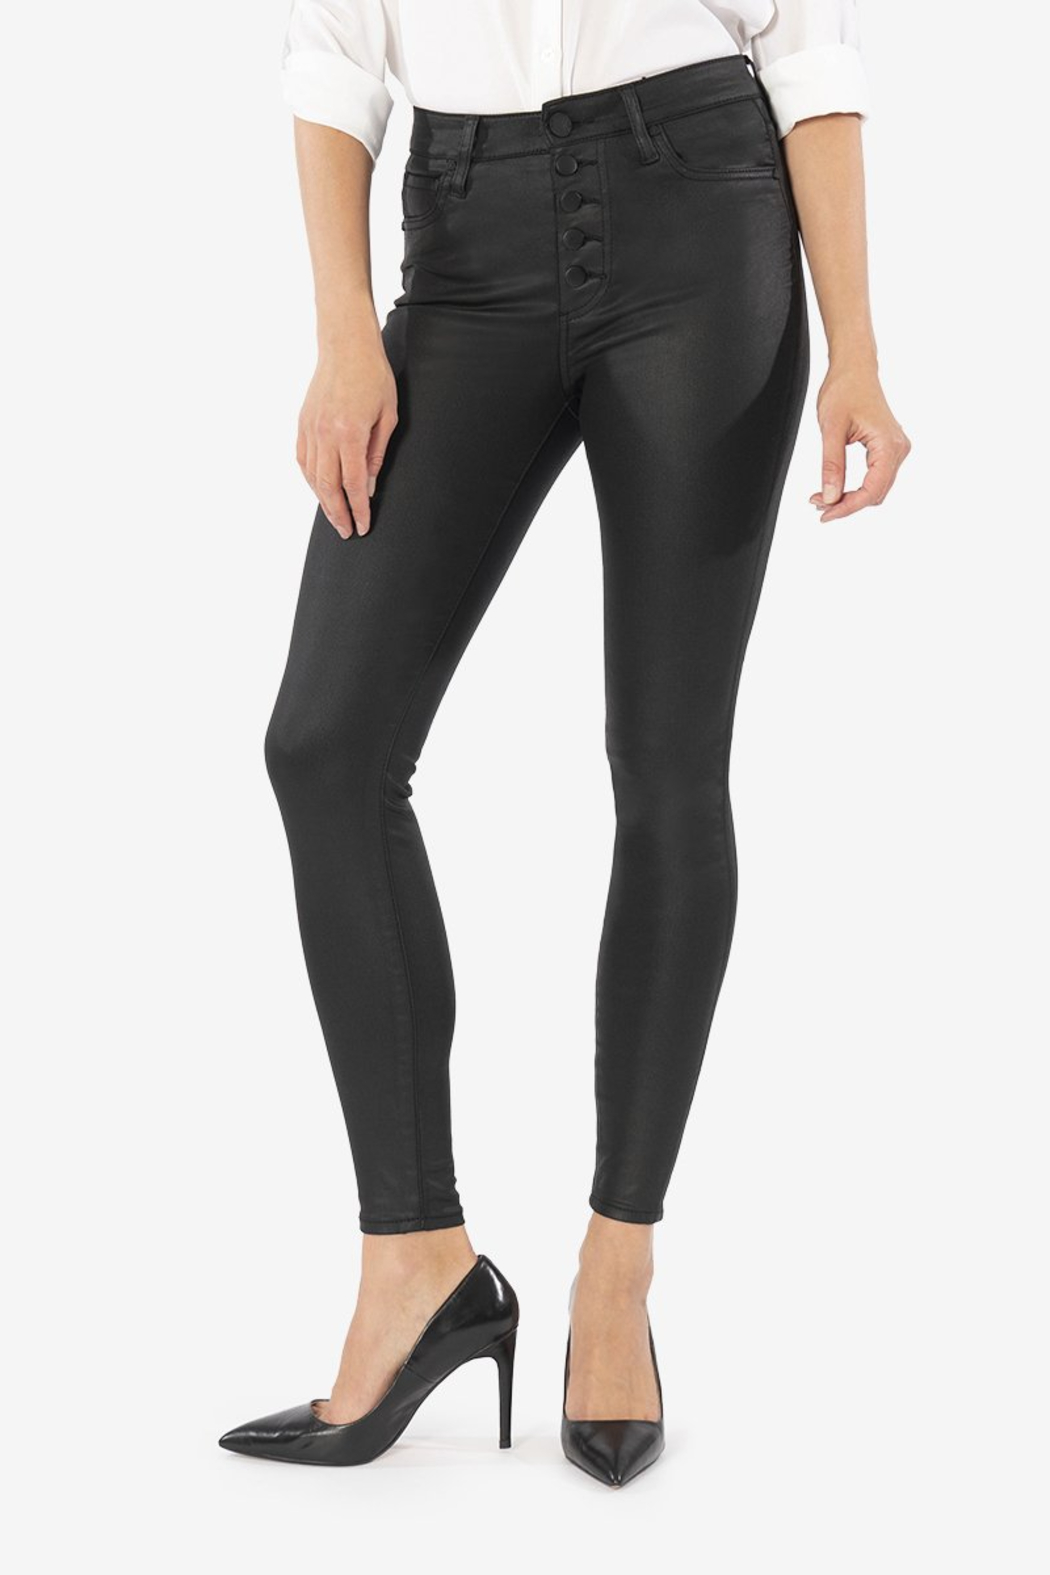 Kut from the Kloth Mia H/R Pleather Skinny - Main Image